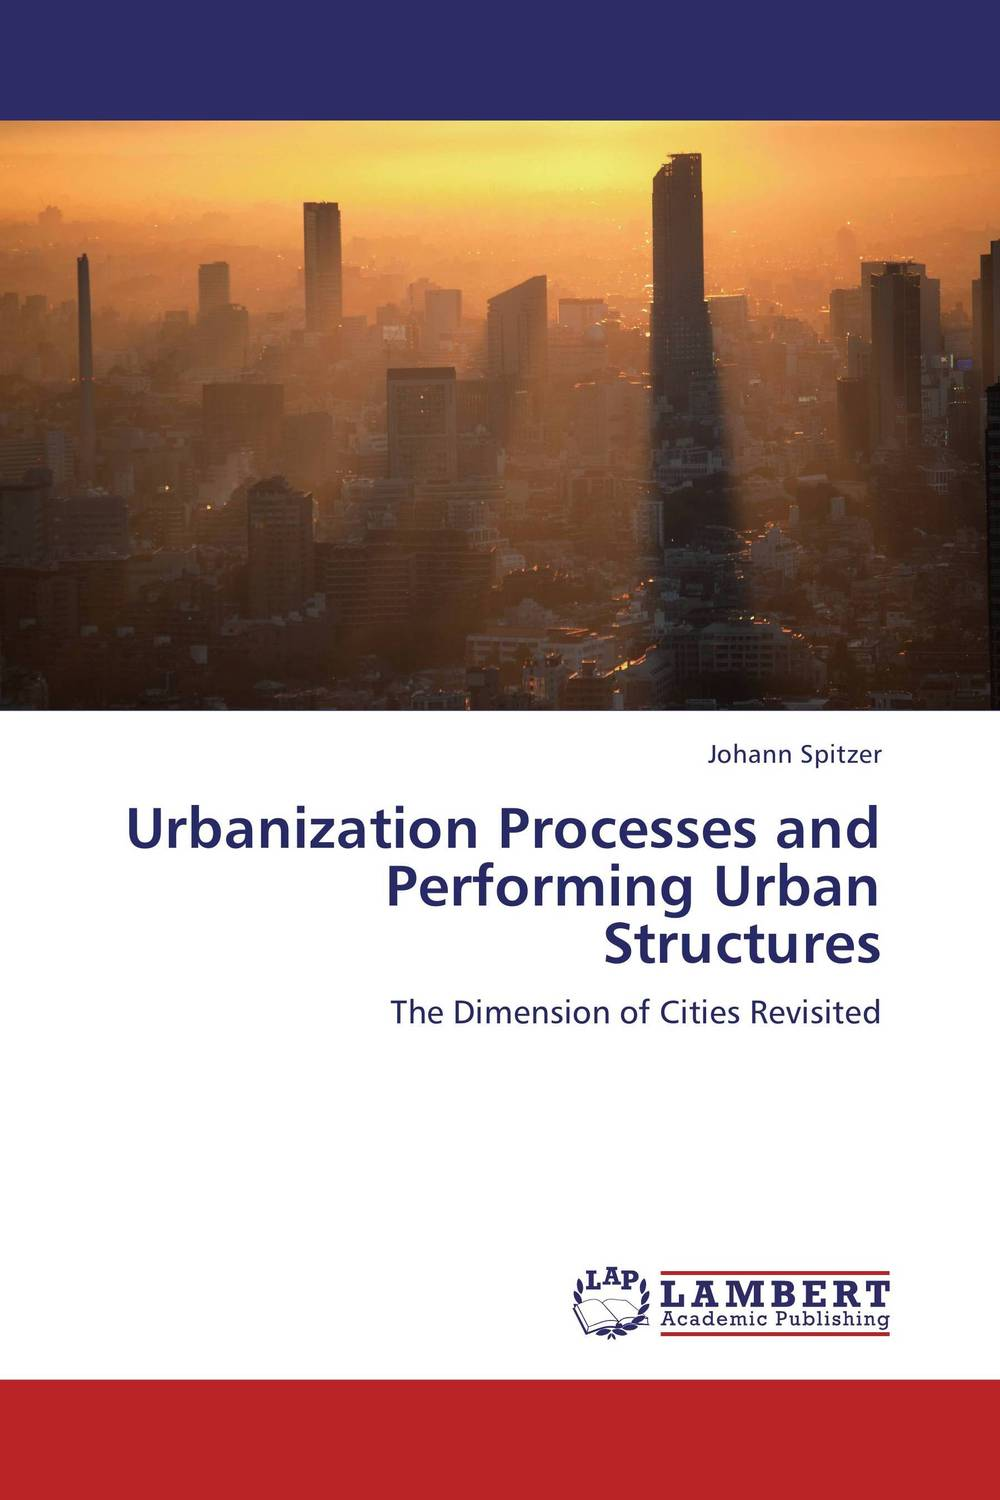 Urbanization Processes and Performing Urban Structures the effects of urban sprawl on the cities structure